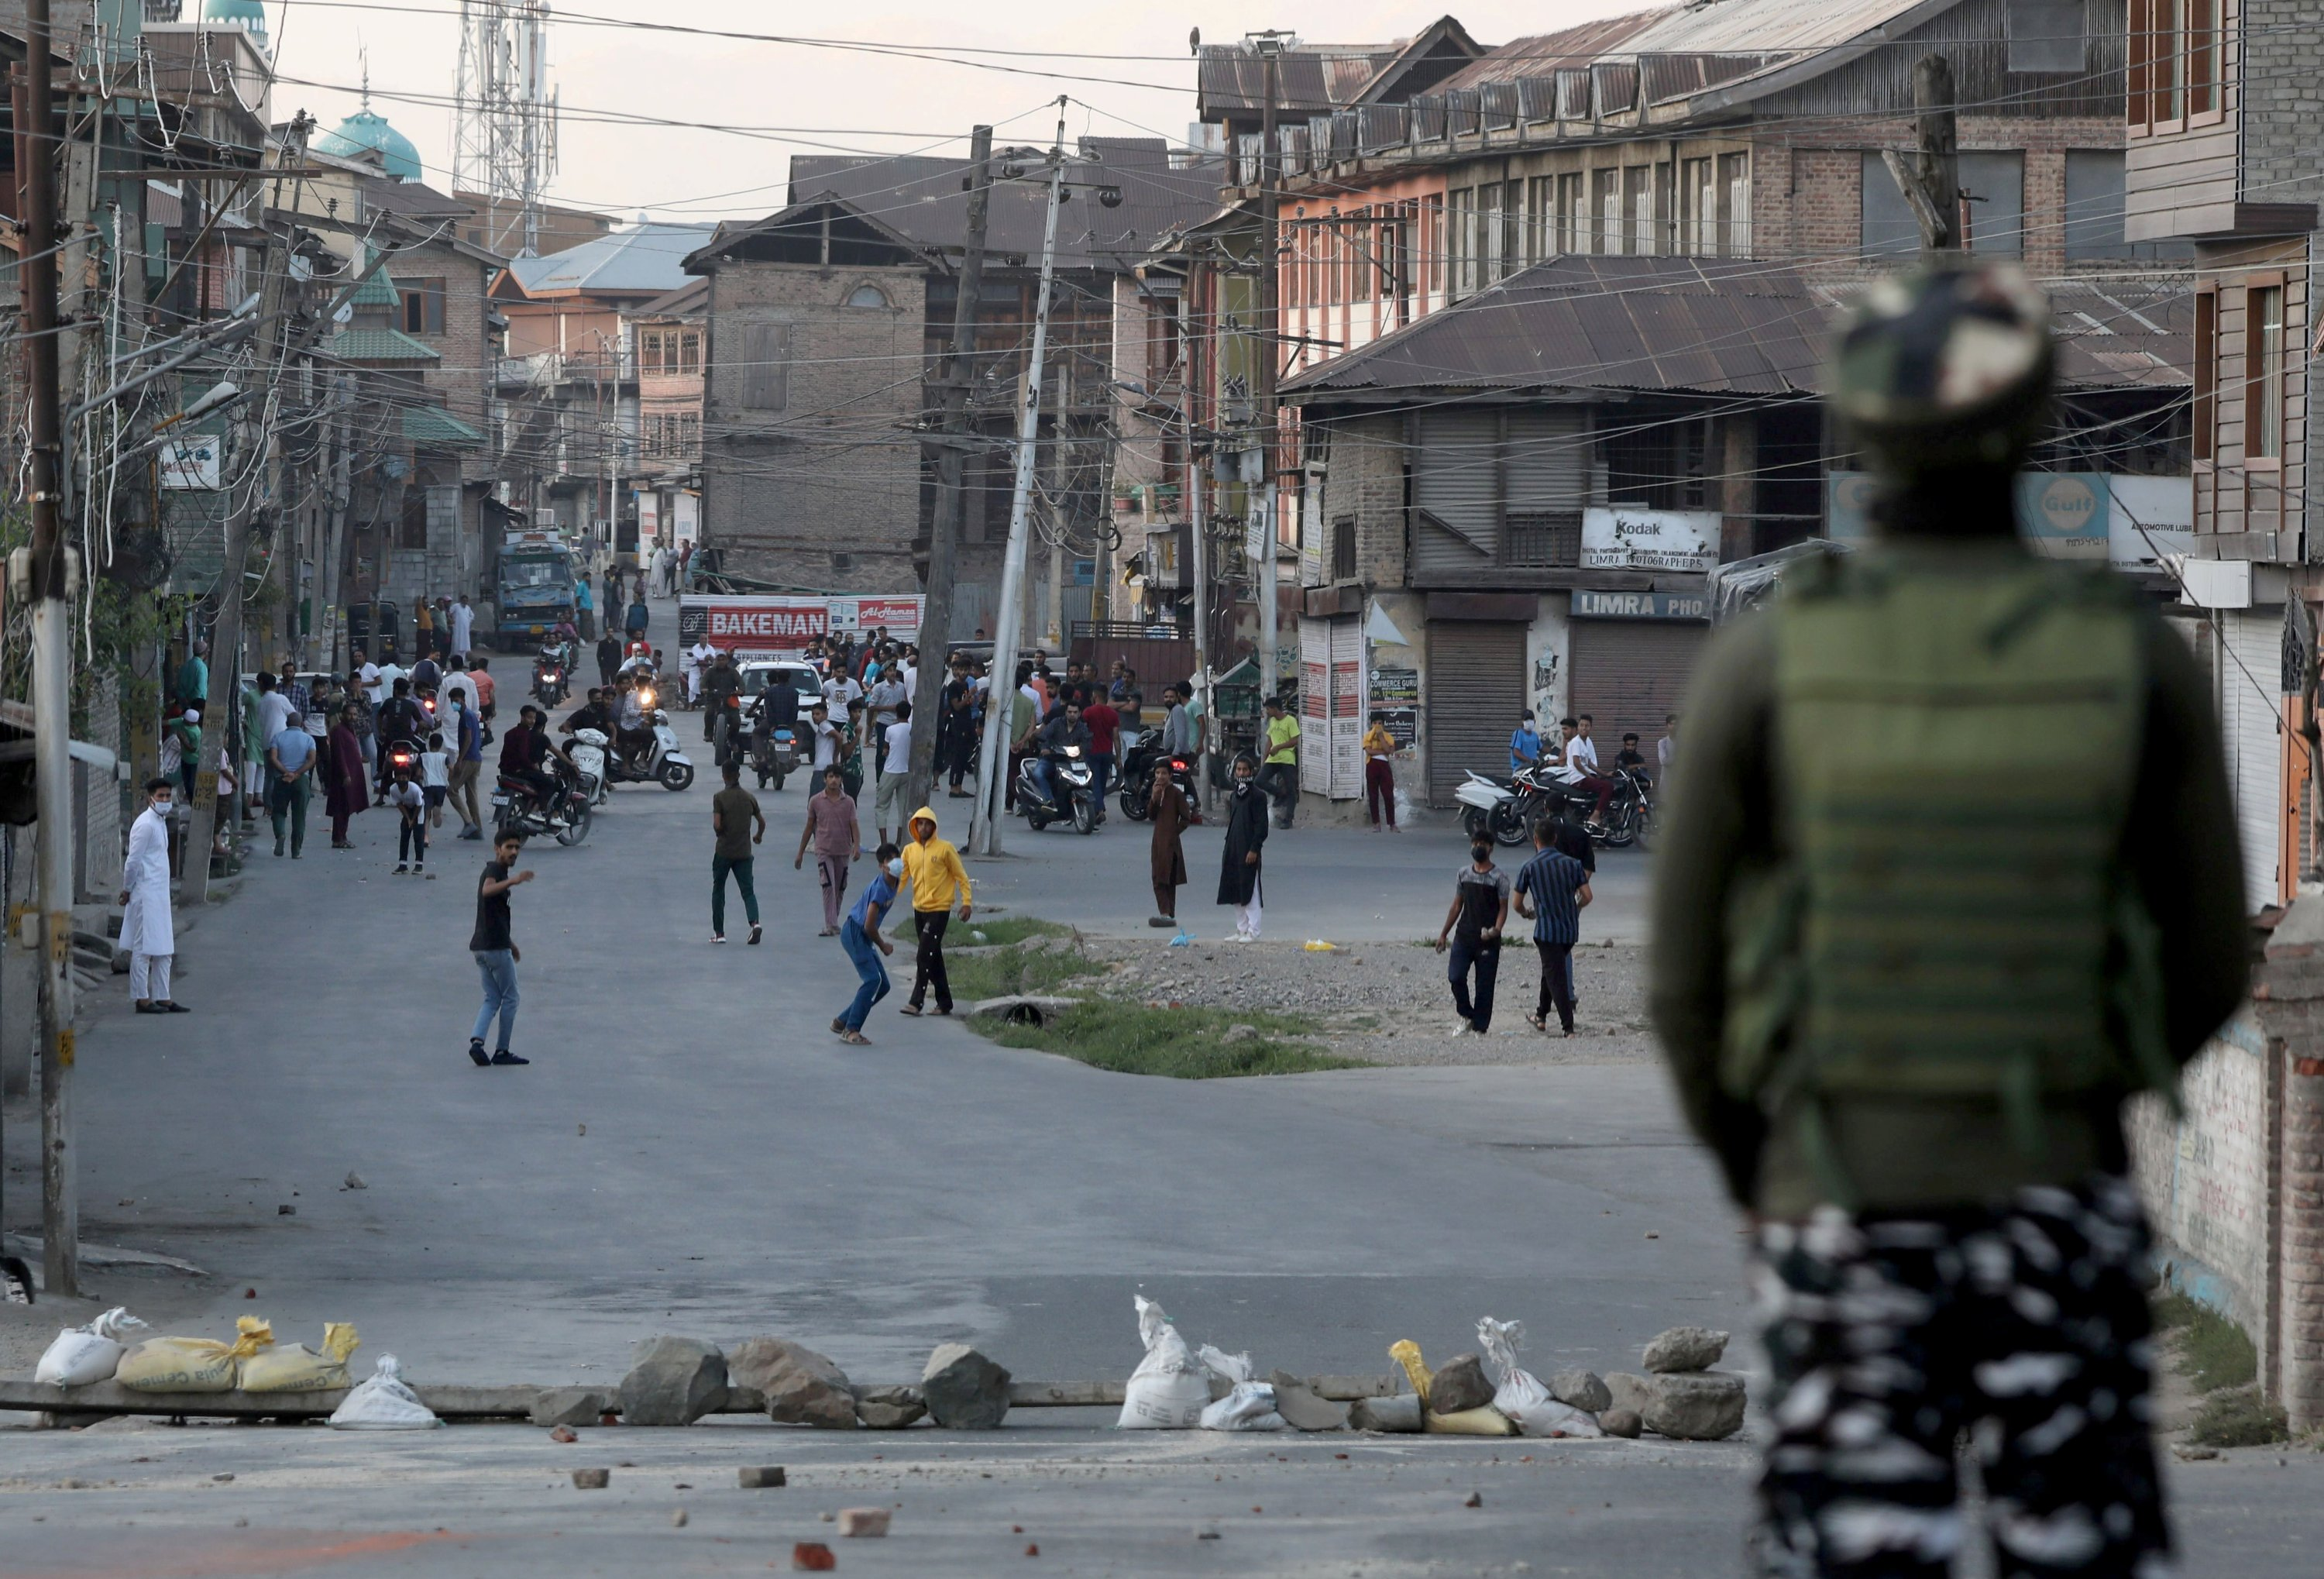 Kashmiri demonstrators throw stones towards Indian security forces during a clash following the death of Syed Ali Shah Geelani, a Kashmiri veteran separatist politician, in Srinagar Sept. 2, 2021. (REUTERS Photo)